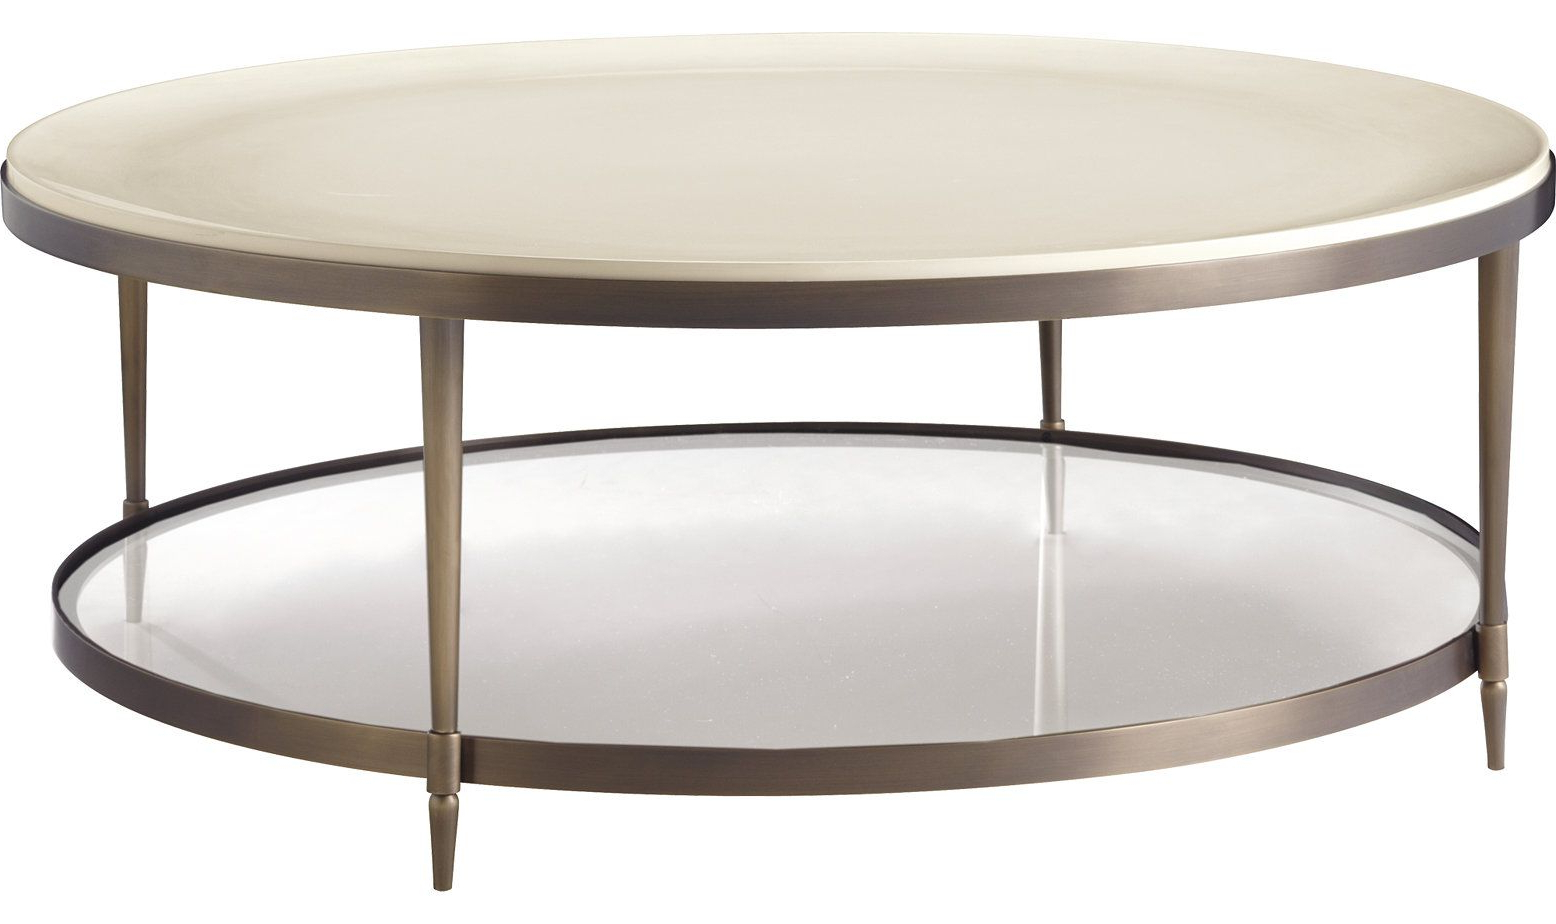 Widely Used Swell Round Coffee Tables In Inspiredthe Beauty Of A Cultured Pearl, The Oberon Cocktail (Gallery 19 of 20)